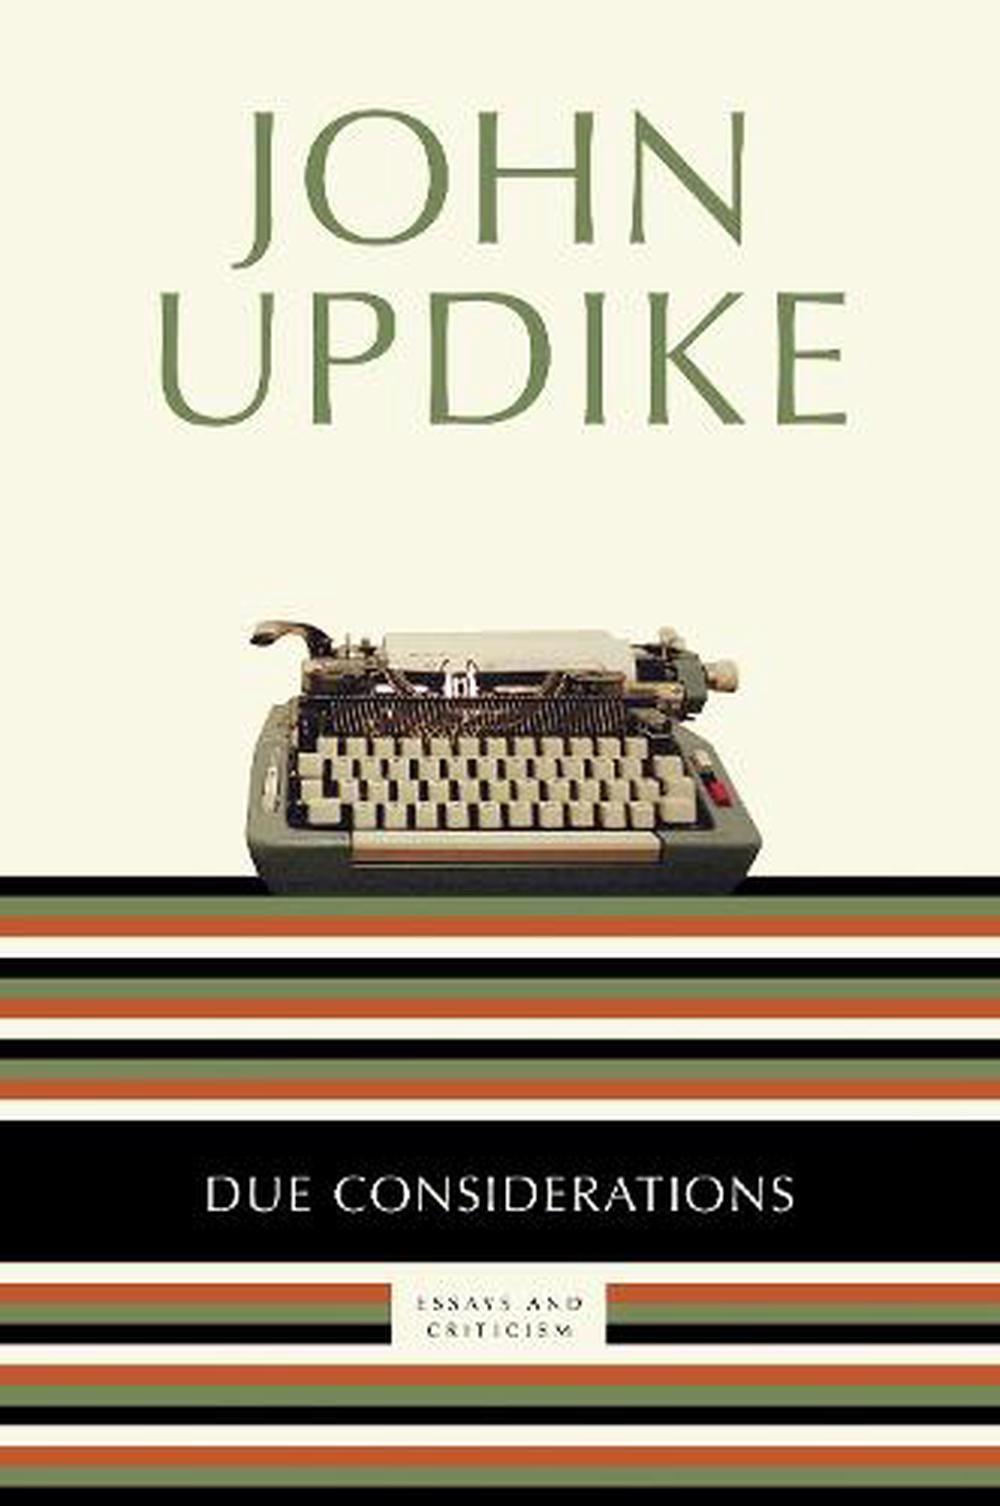 essays on separating by john updike Separating by john updike keyword essays and term papers available at echeatcom, the largest free essay community.